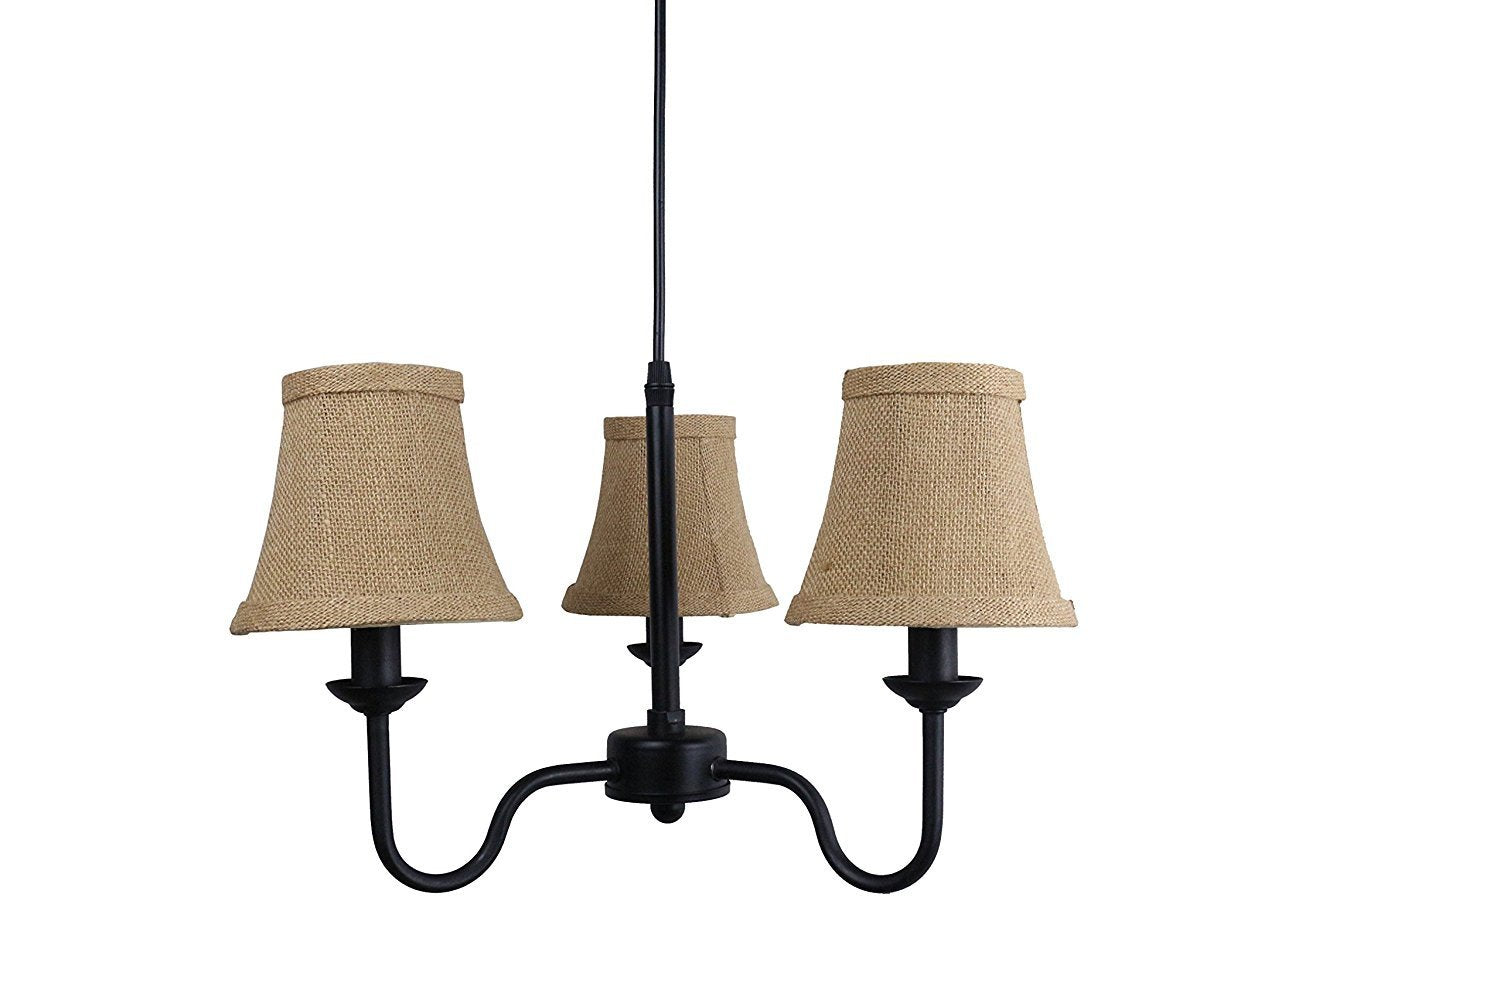 Portable Shire 3-Light Chandelier with Burlap Bell Shades